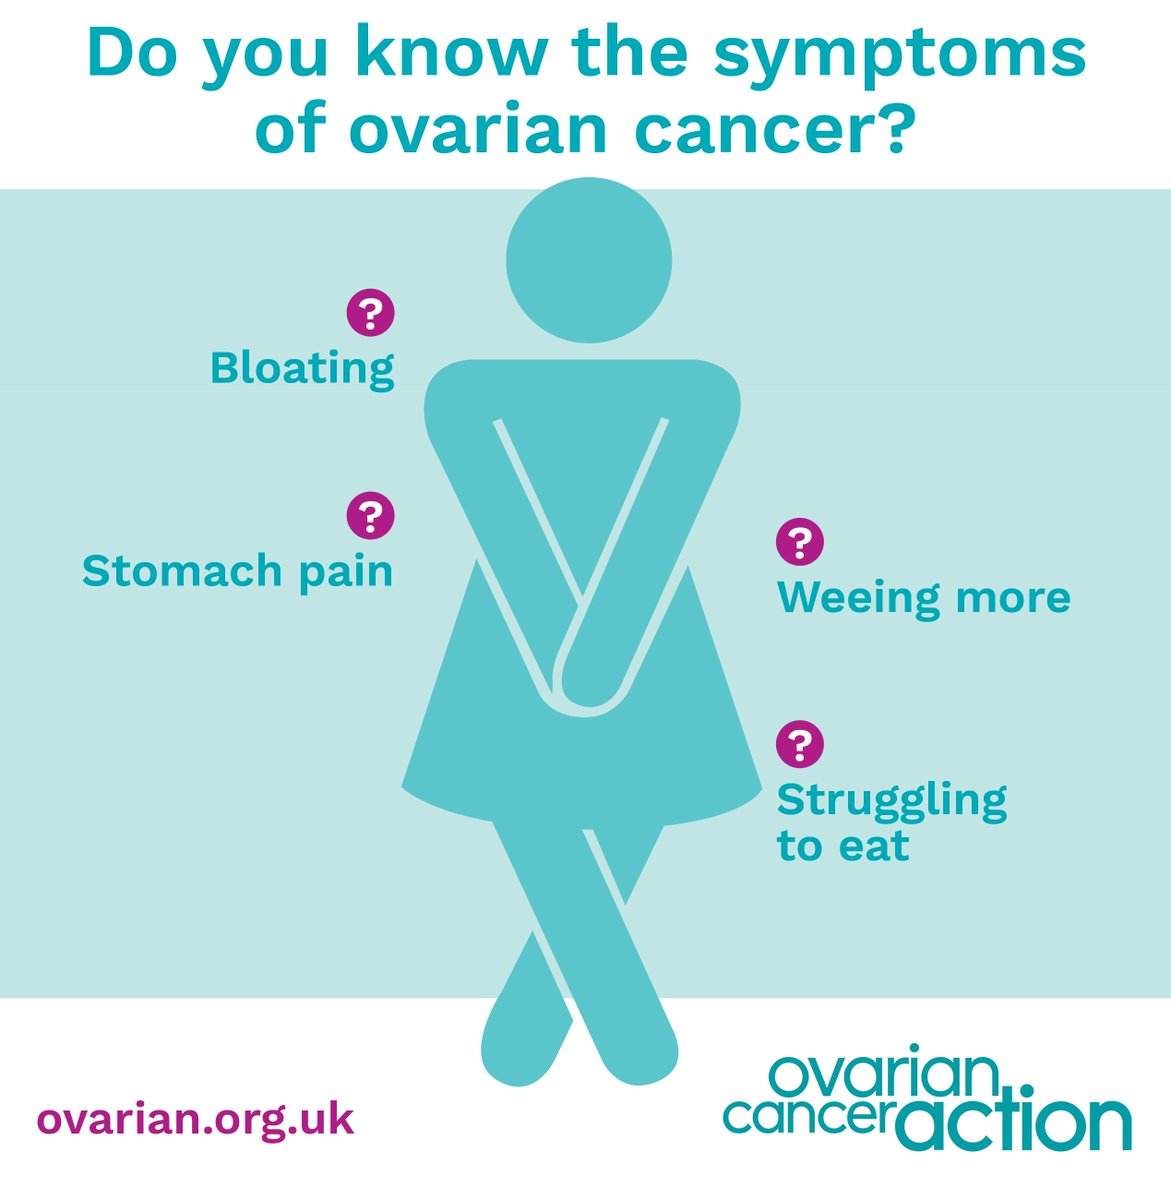 Ovarian Cancer Action On Twitter Women Diagnosed With Stage 1 Ovarian Cancer Have A 90 Survival Rate Compared To 19 At Stage 3 With No Screening Programme Symptom Awareness Is Vital To